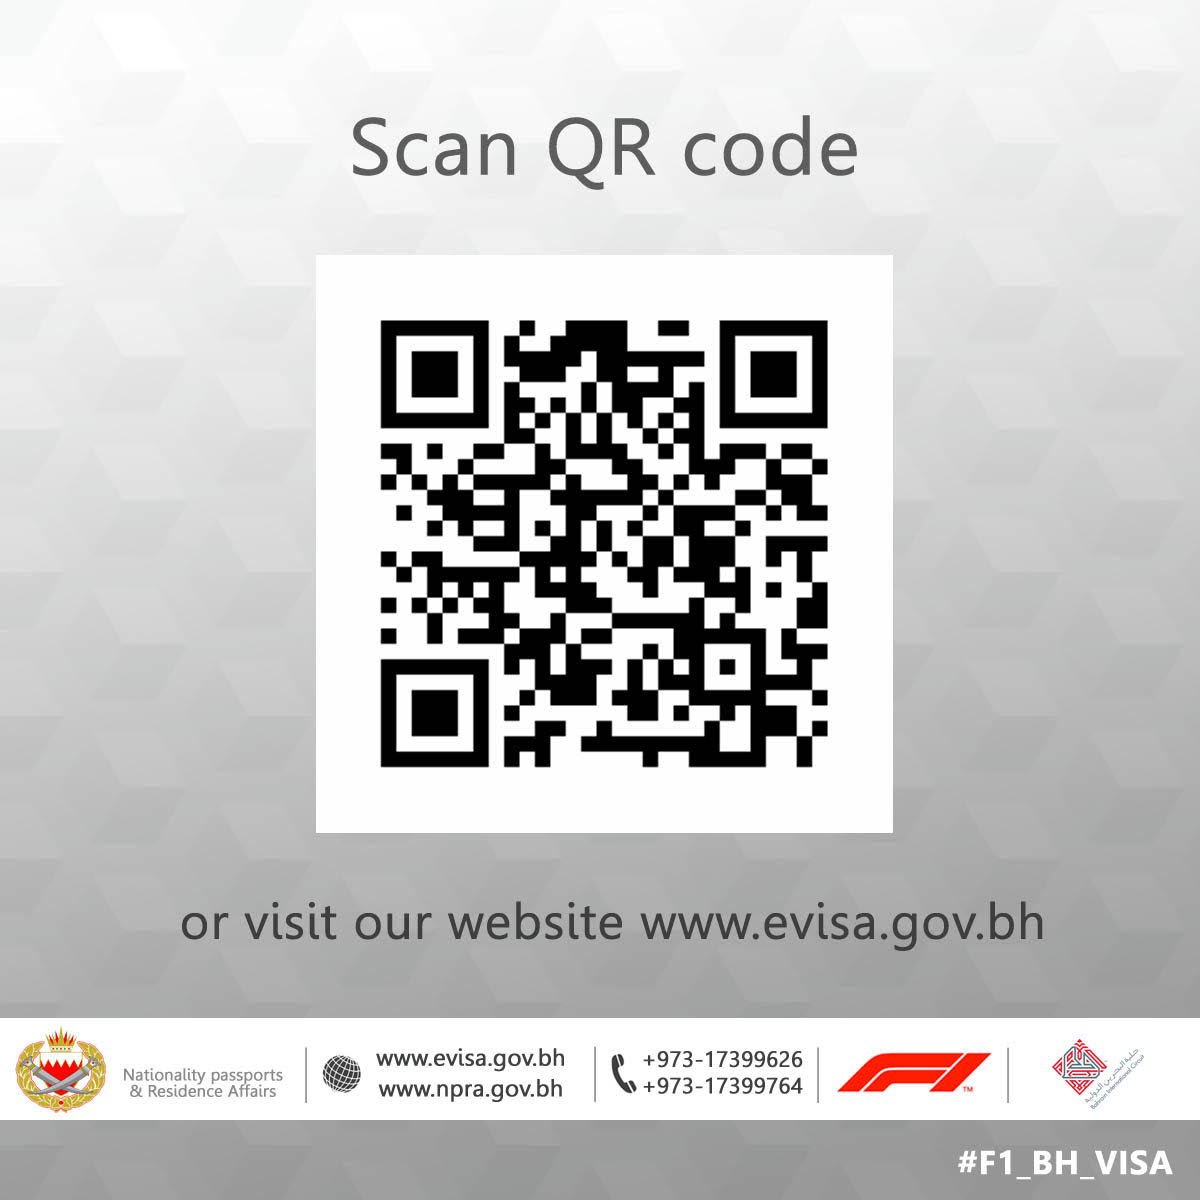 Ministry Of Interior On Twitter 115 Countries Have The Opportunity To Apply For F1 Evisa Directly Scan The Qr Code Or Visit The Https T Co Fjdjotxymb To Check The List Https T Co 6zto3ulzkq